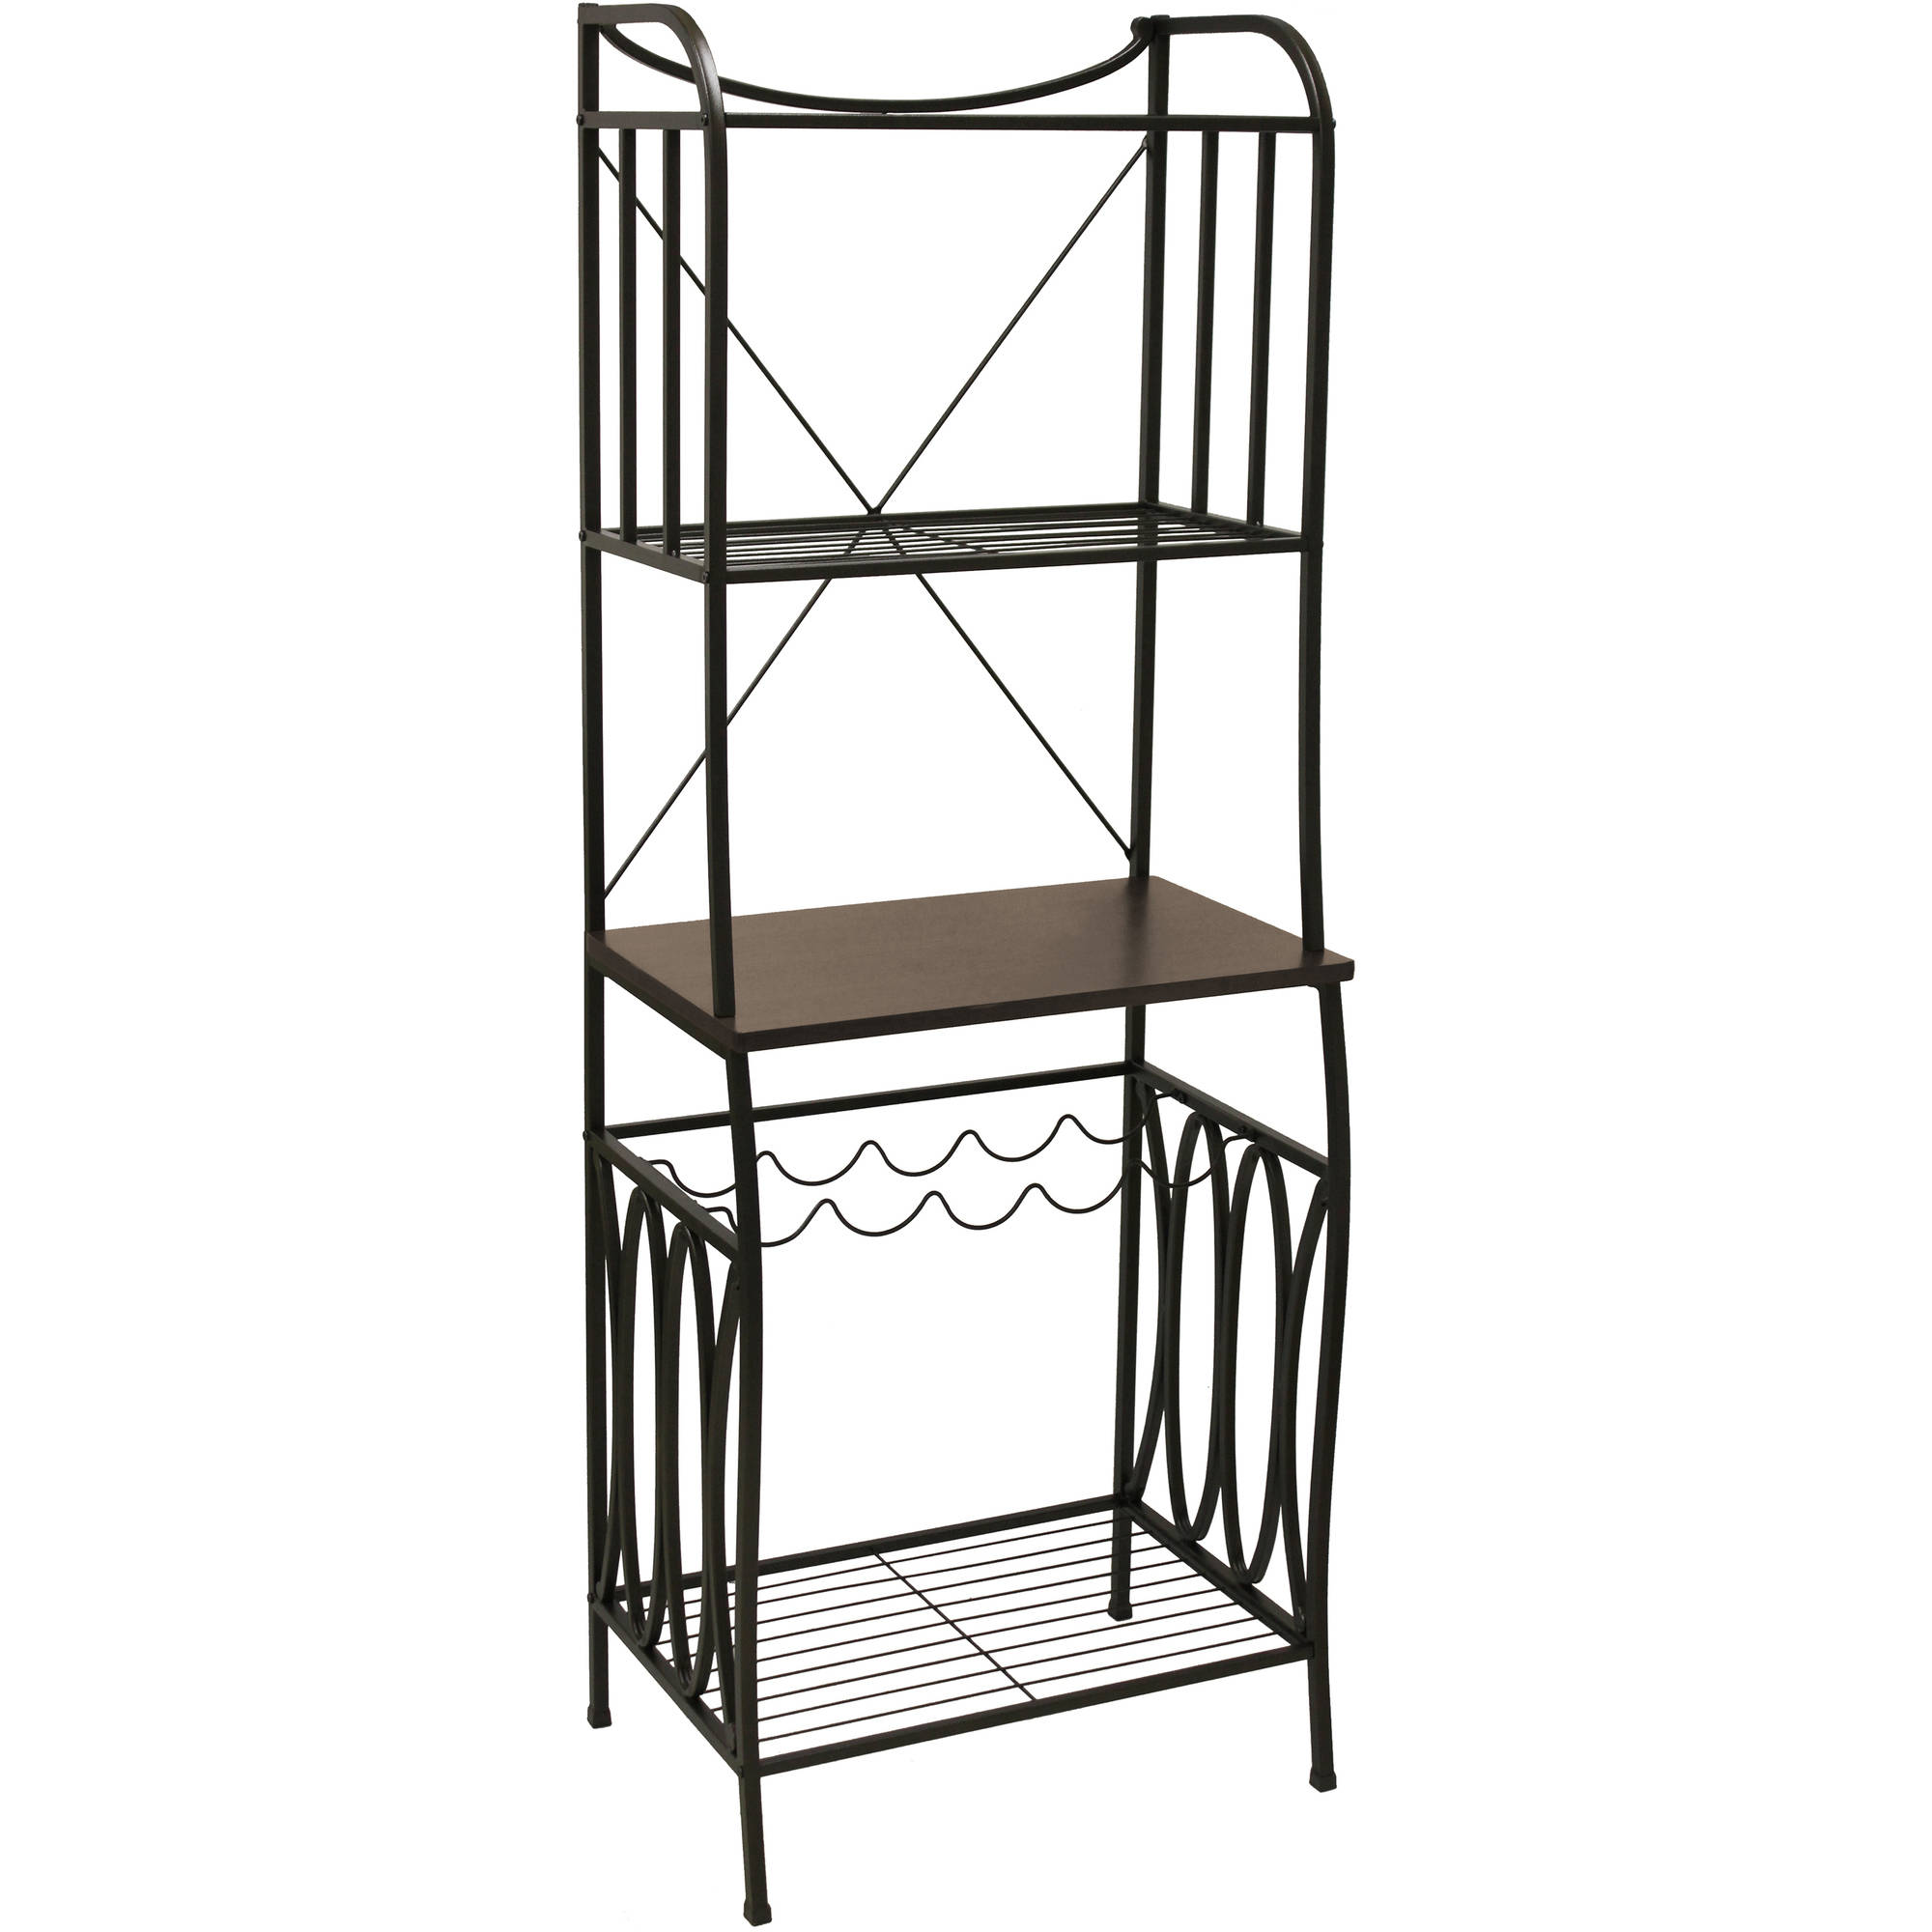 Better Homes and Gardens Mixed Material Baker's Rack, Mahogany Finish